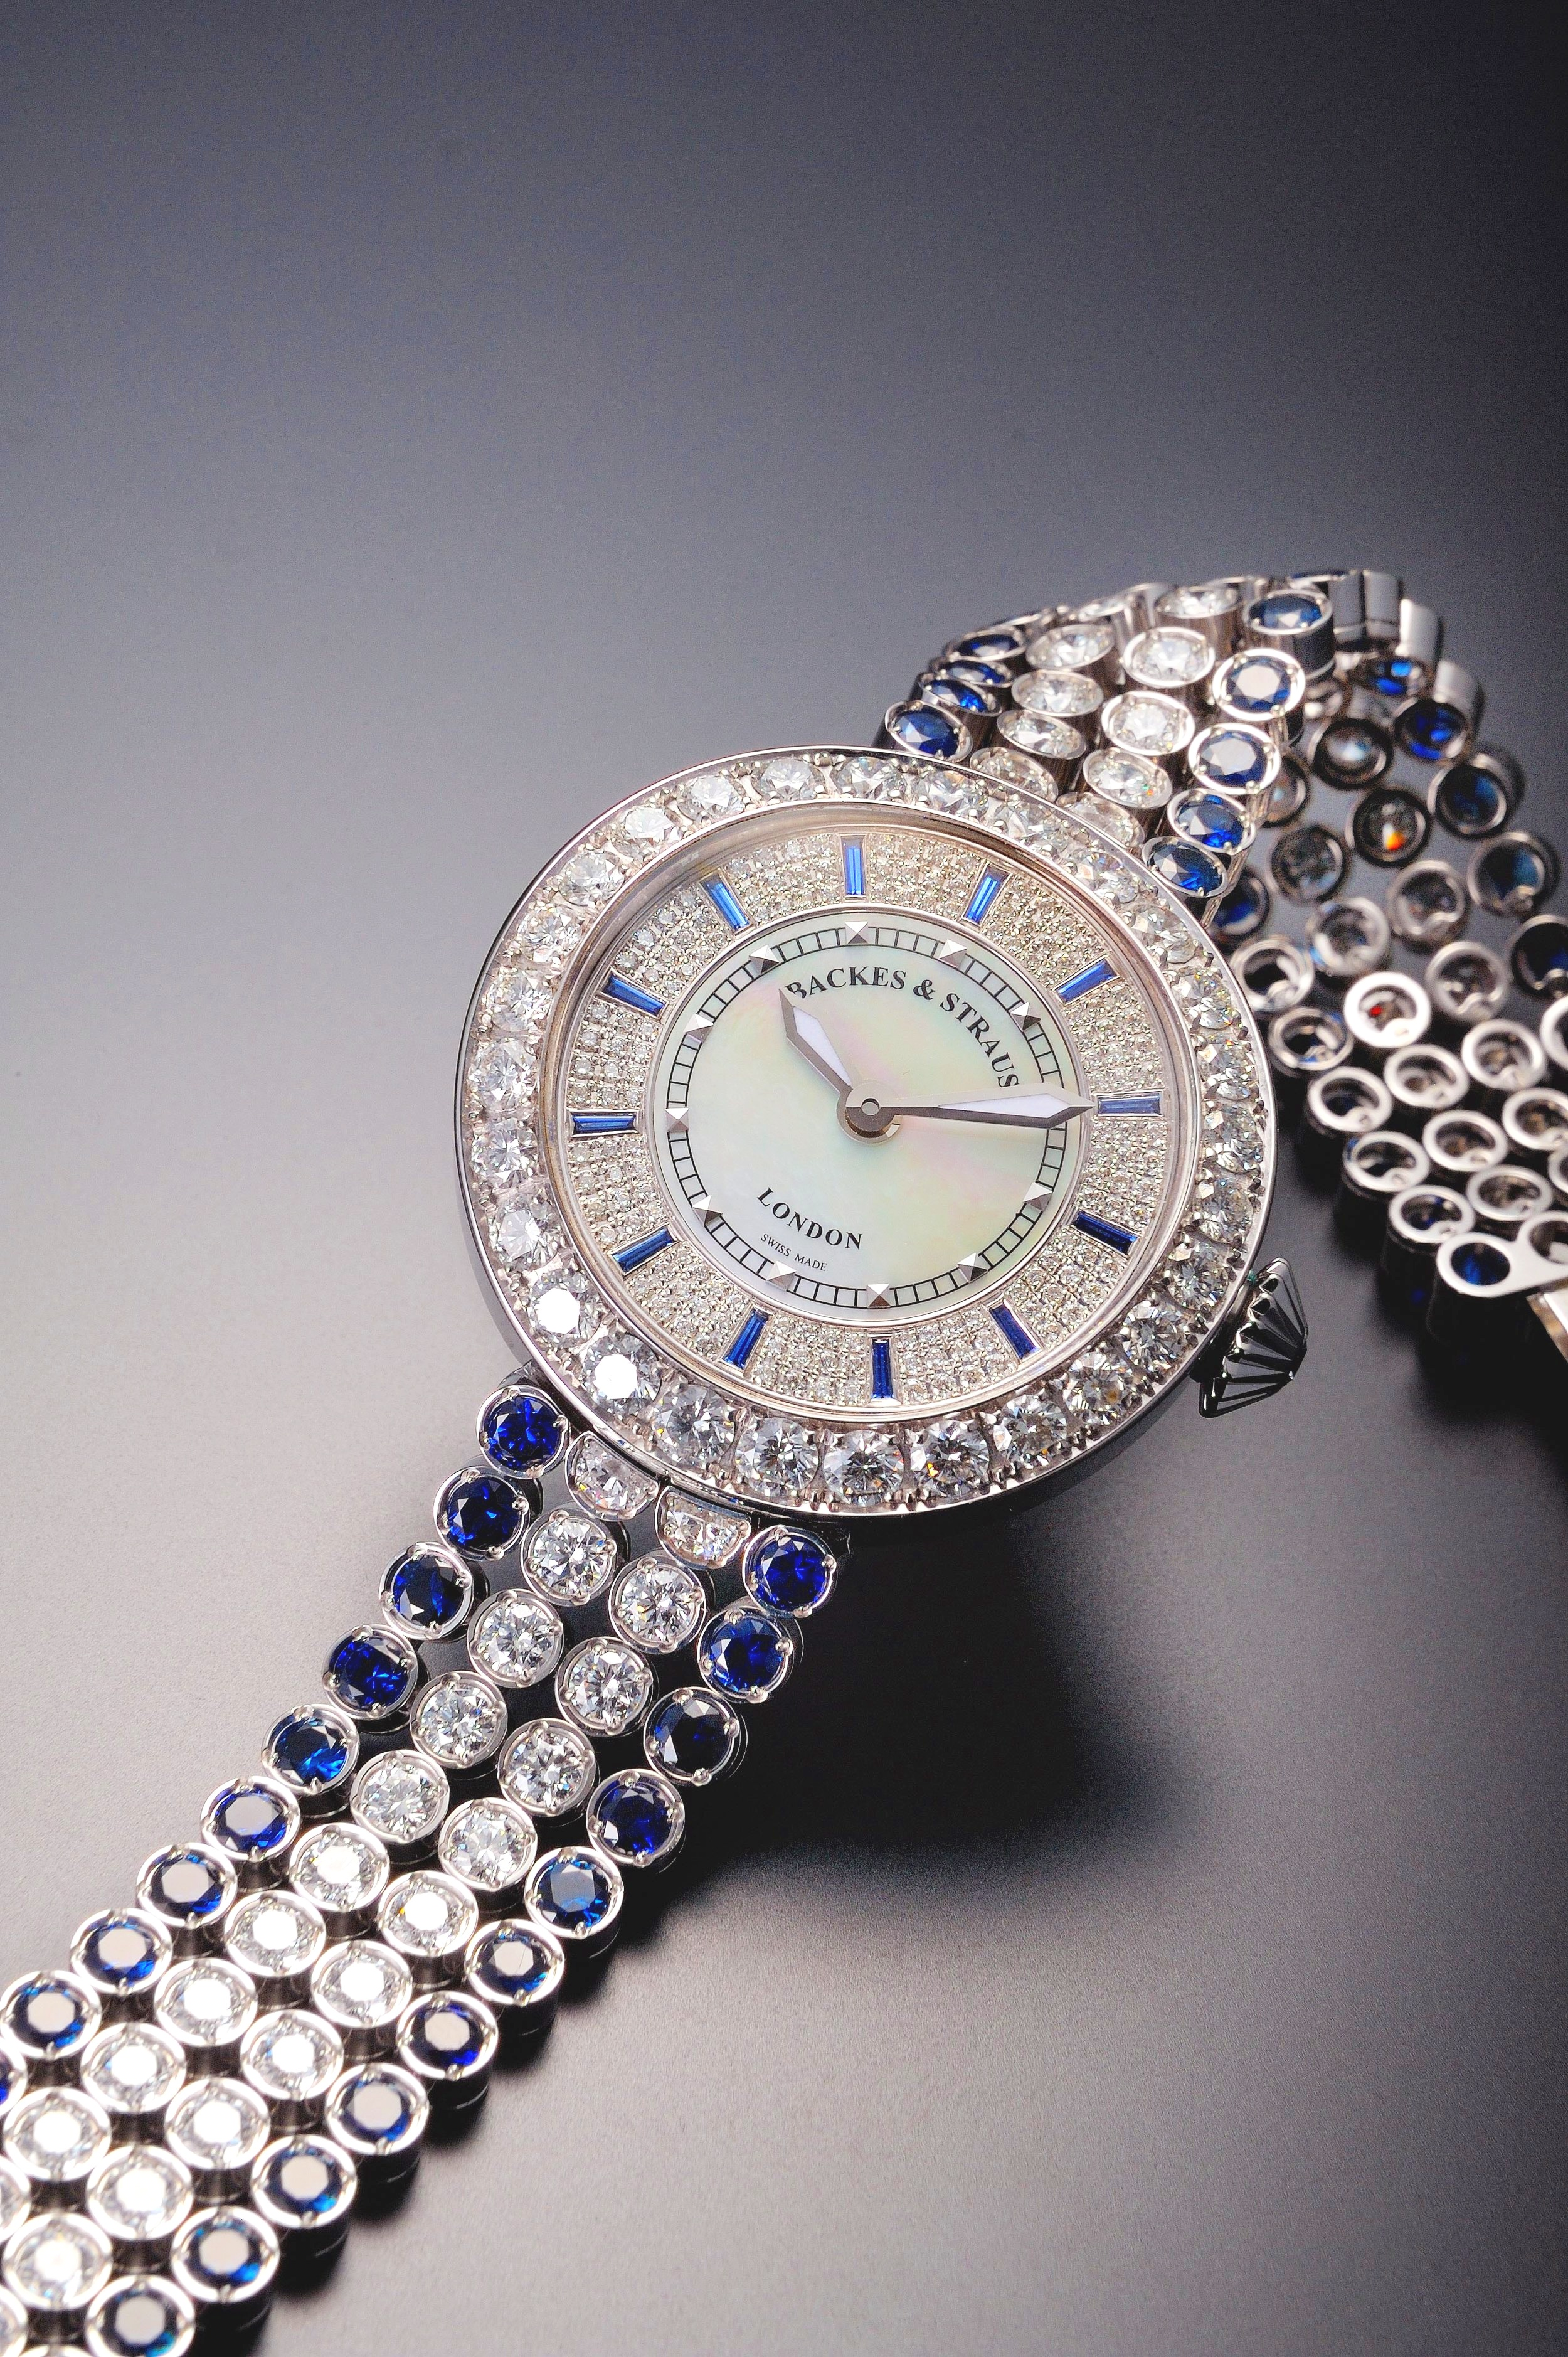 Round diamond watch with sapphires